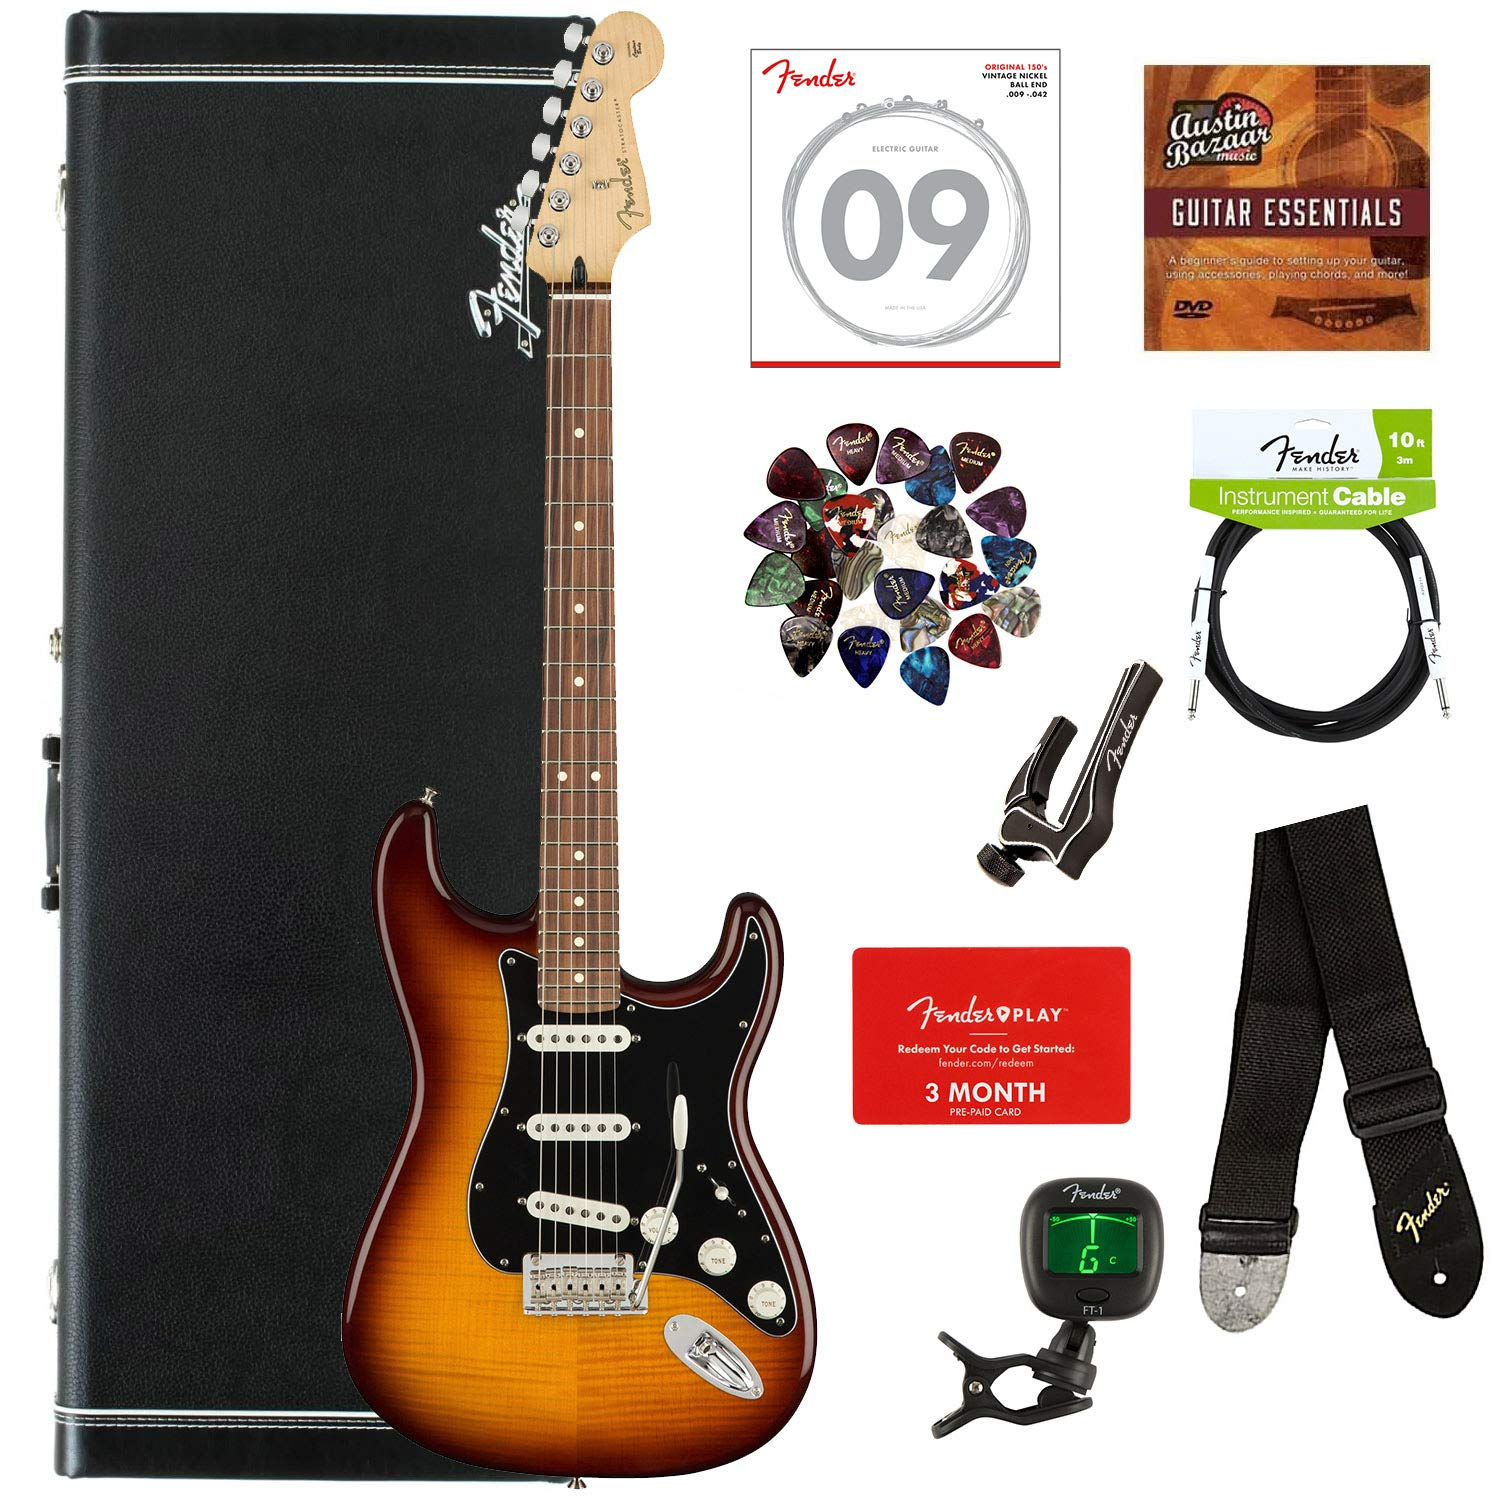 6d6fe6a91f Fender Player Stratocaster HSS, Pau Ferro - Sage Green Metallic Bundle with Hard  Case, Cable, Tuner, Strap, Strings, Picks, Capo, Fender Play Online Lessons  ...